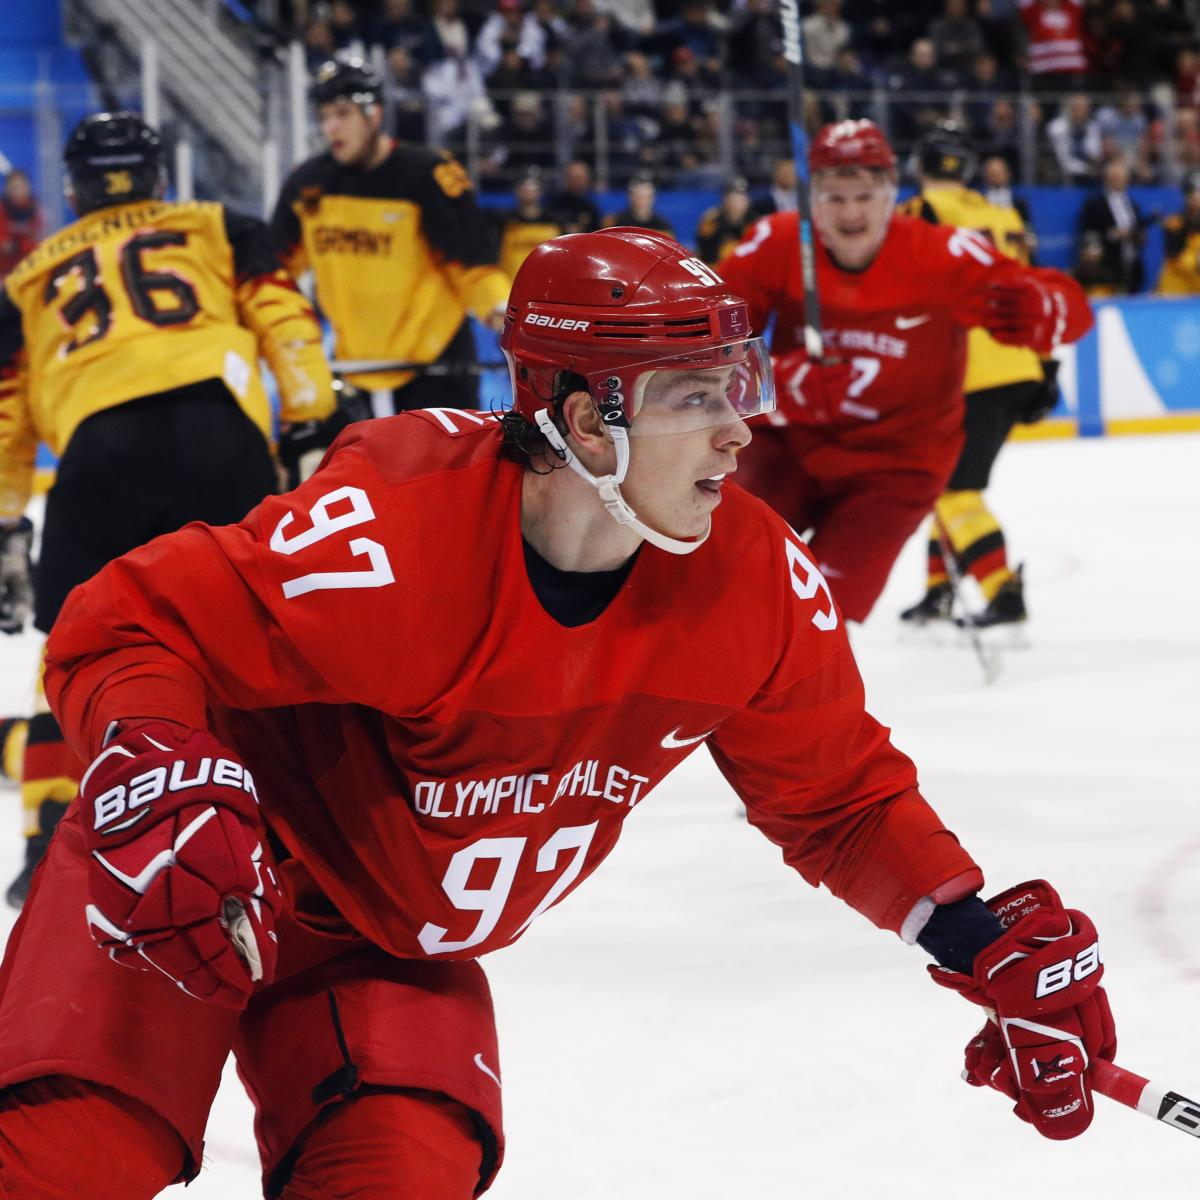 russian olympic hockey team 2018 players who should be in the nhl bleacher report latest. Black Bedroom Furniture Sets. Home Design Ideas